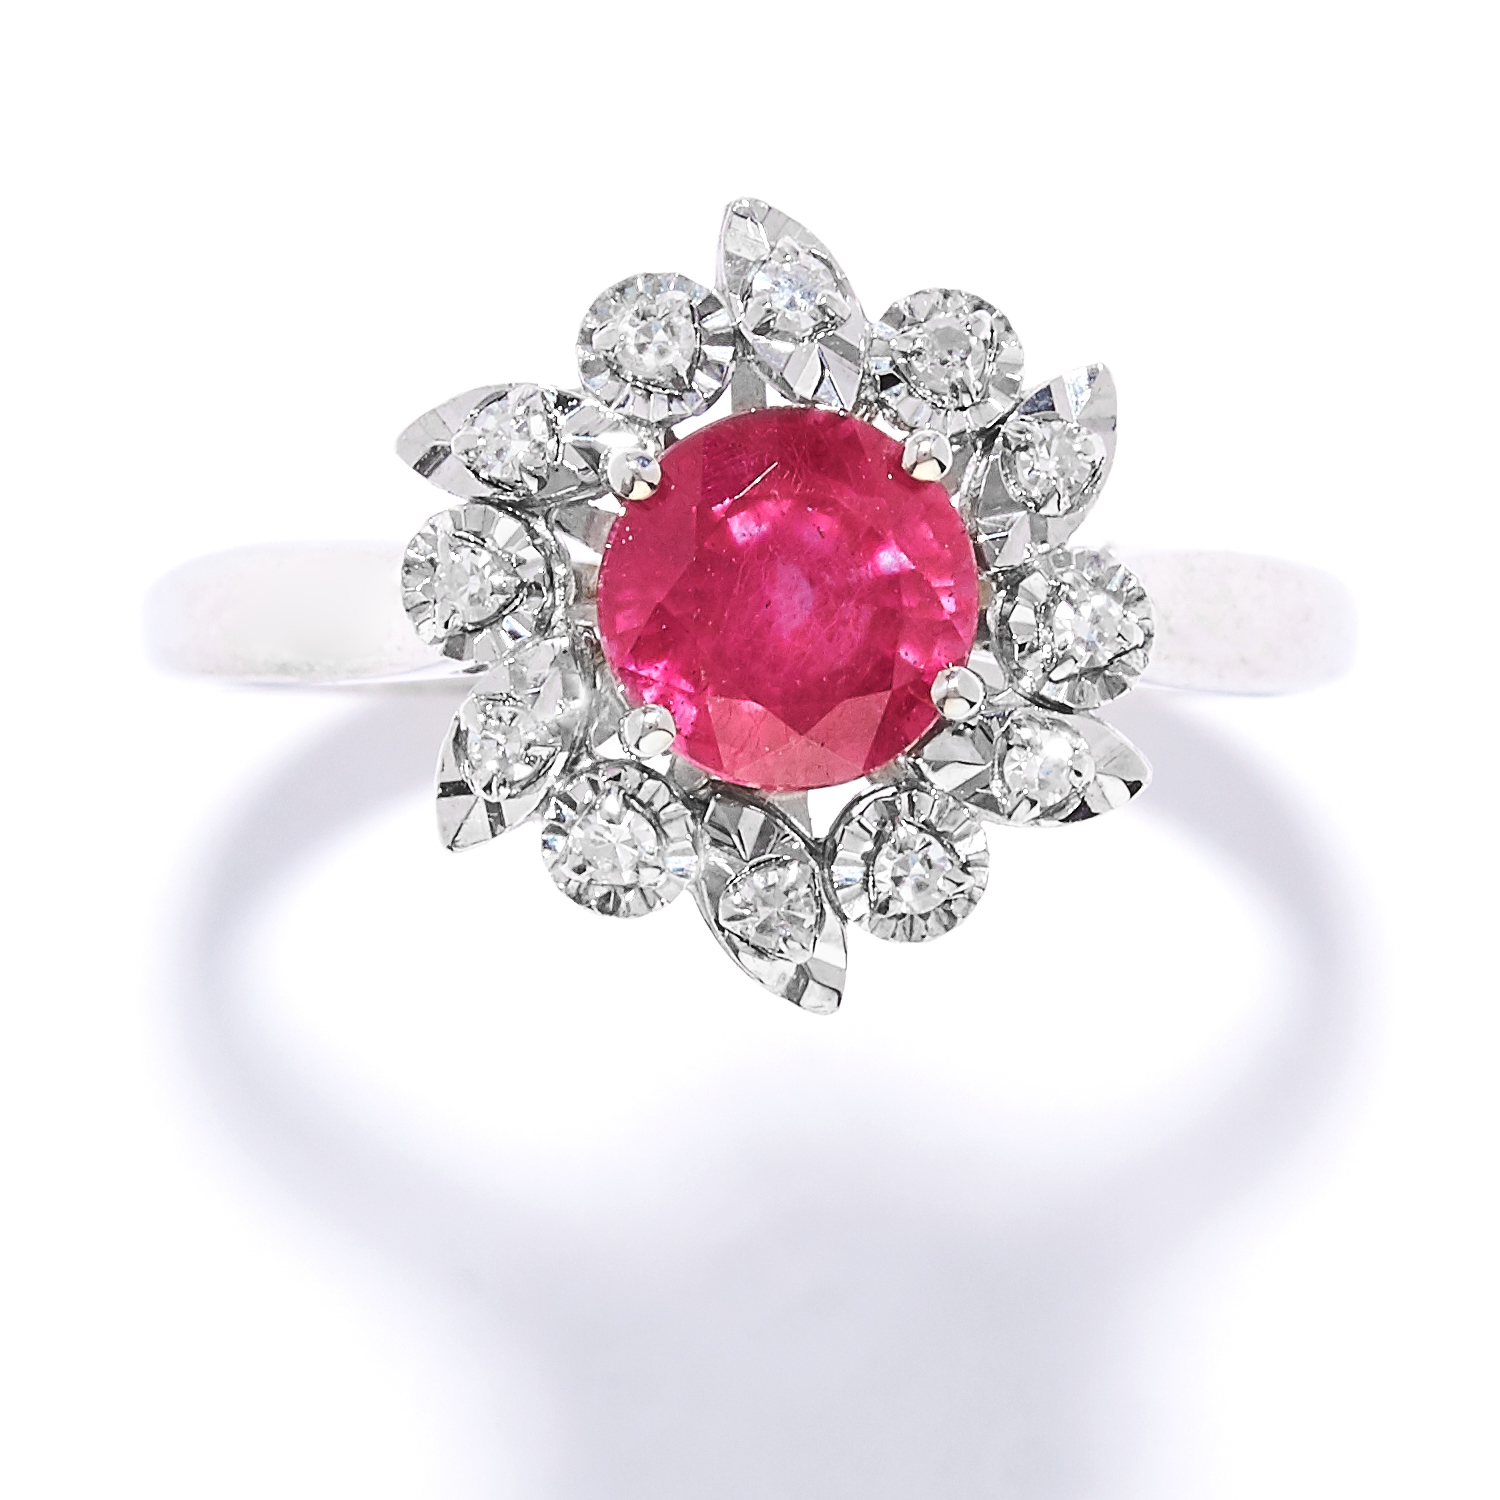 RUBY AND DIAMOND CLUSTER RING set with a round cut ruby in a cluster of round cut diamonds, size N /